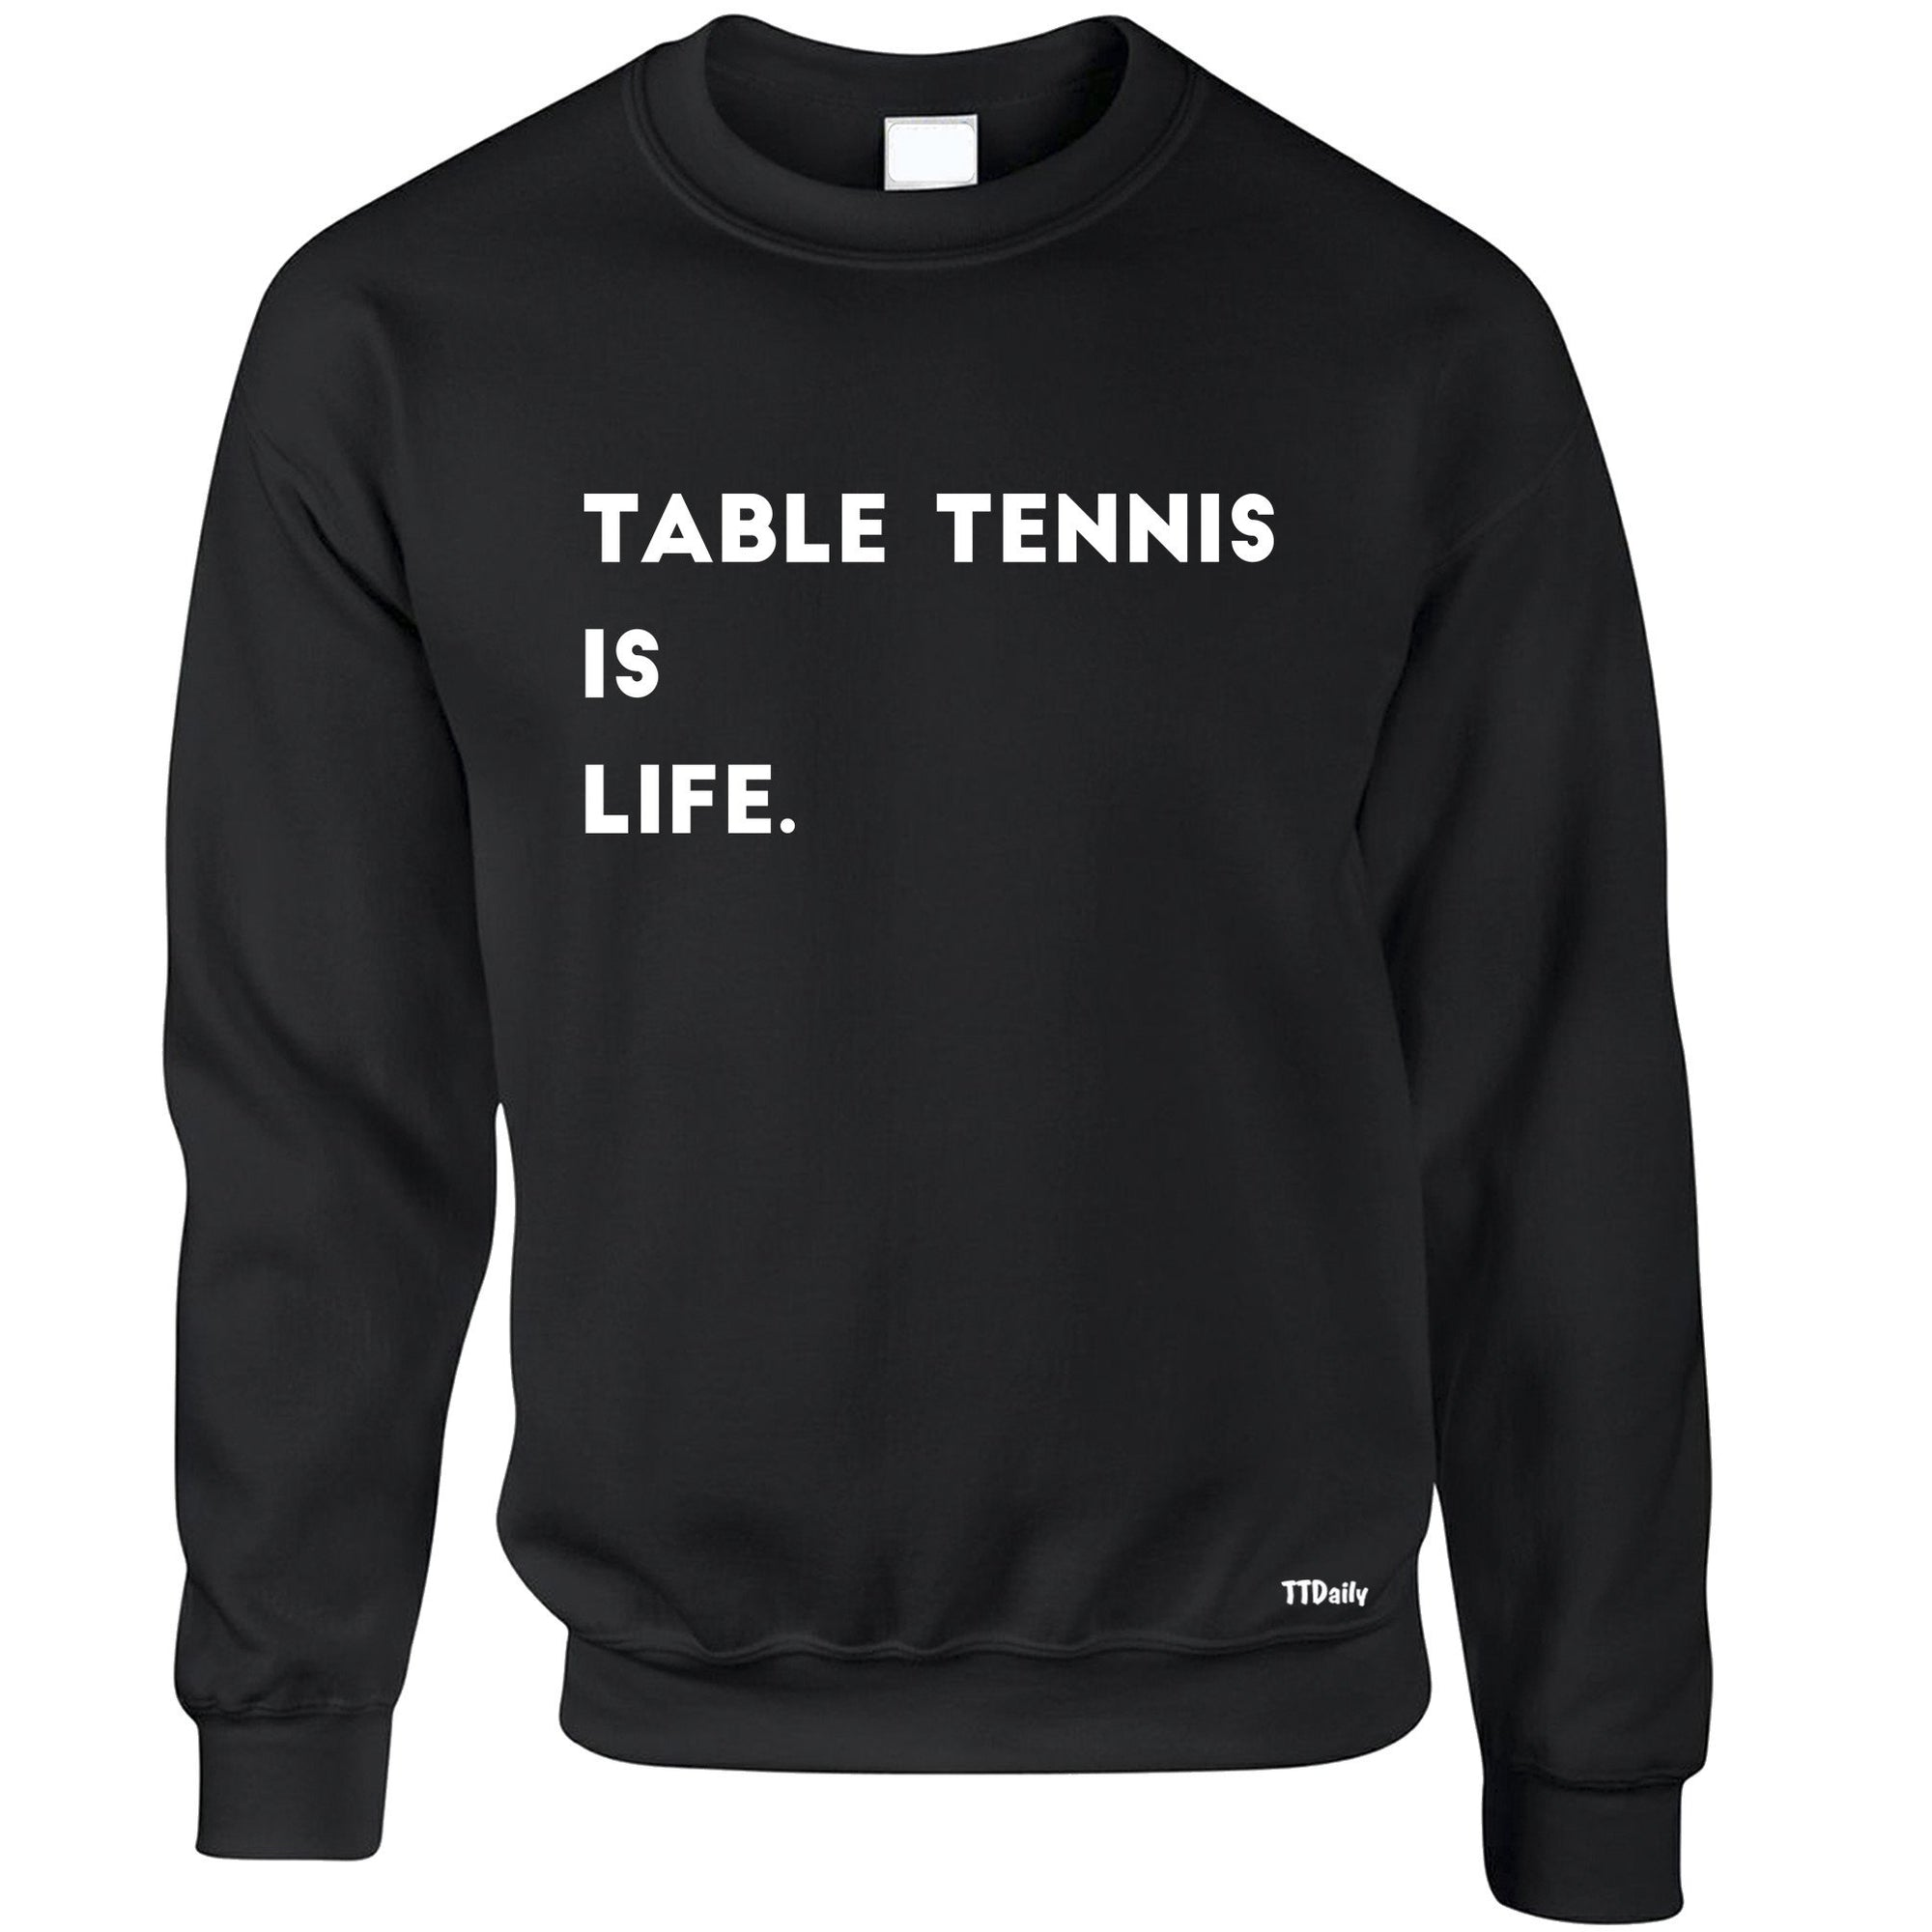 Table Tennis Is Life Jumper Sweatshirt Sweater